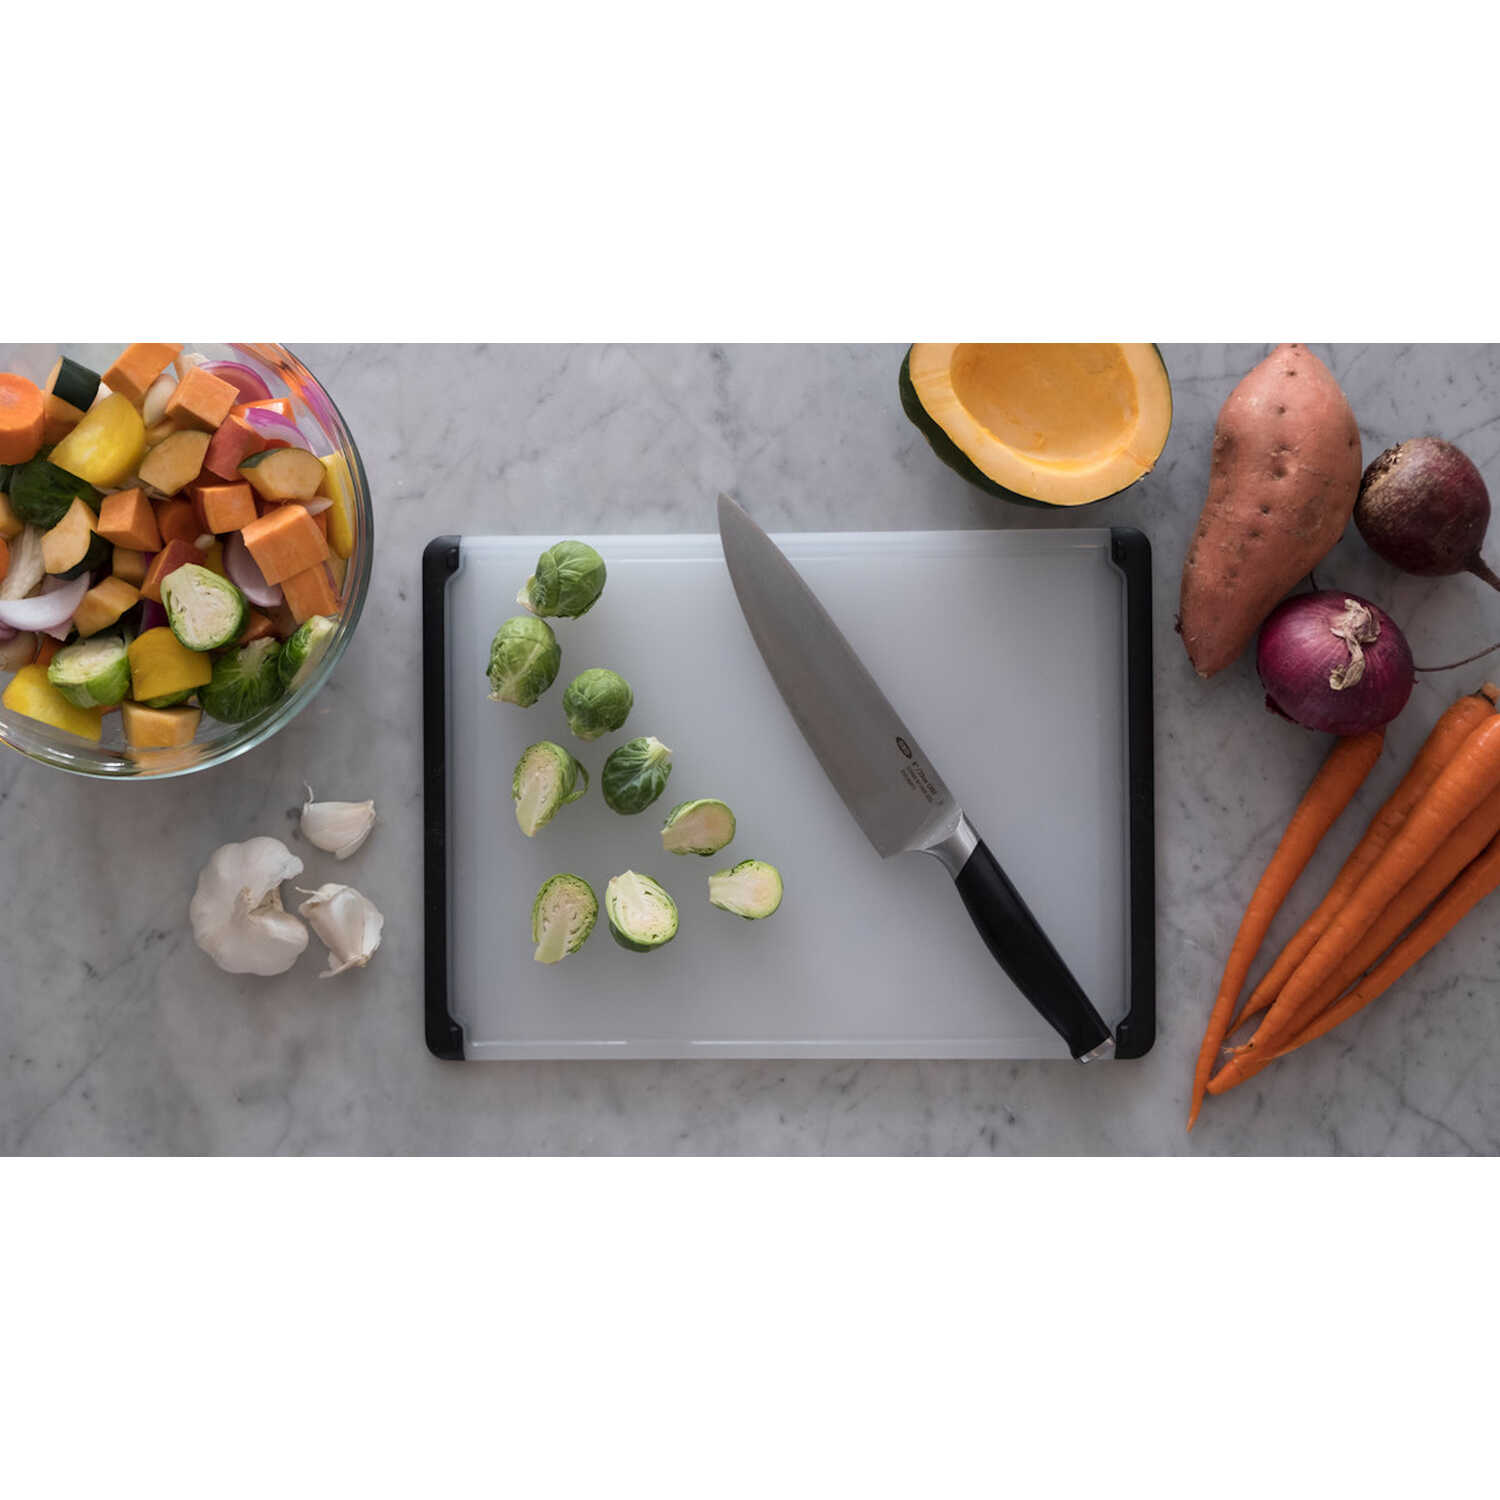 OXO  Good Grips  10.5 in. W x 14.5 in. L Matte  Black/White  Polypropylene  Utility Cutting Board